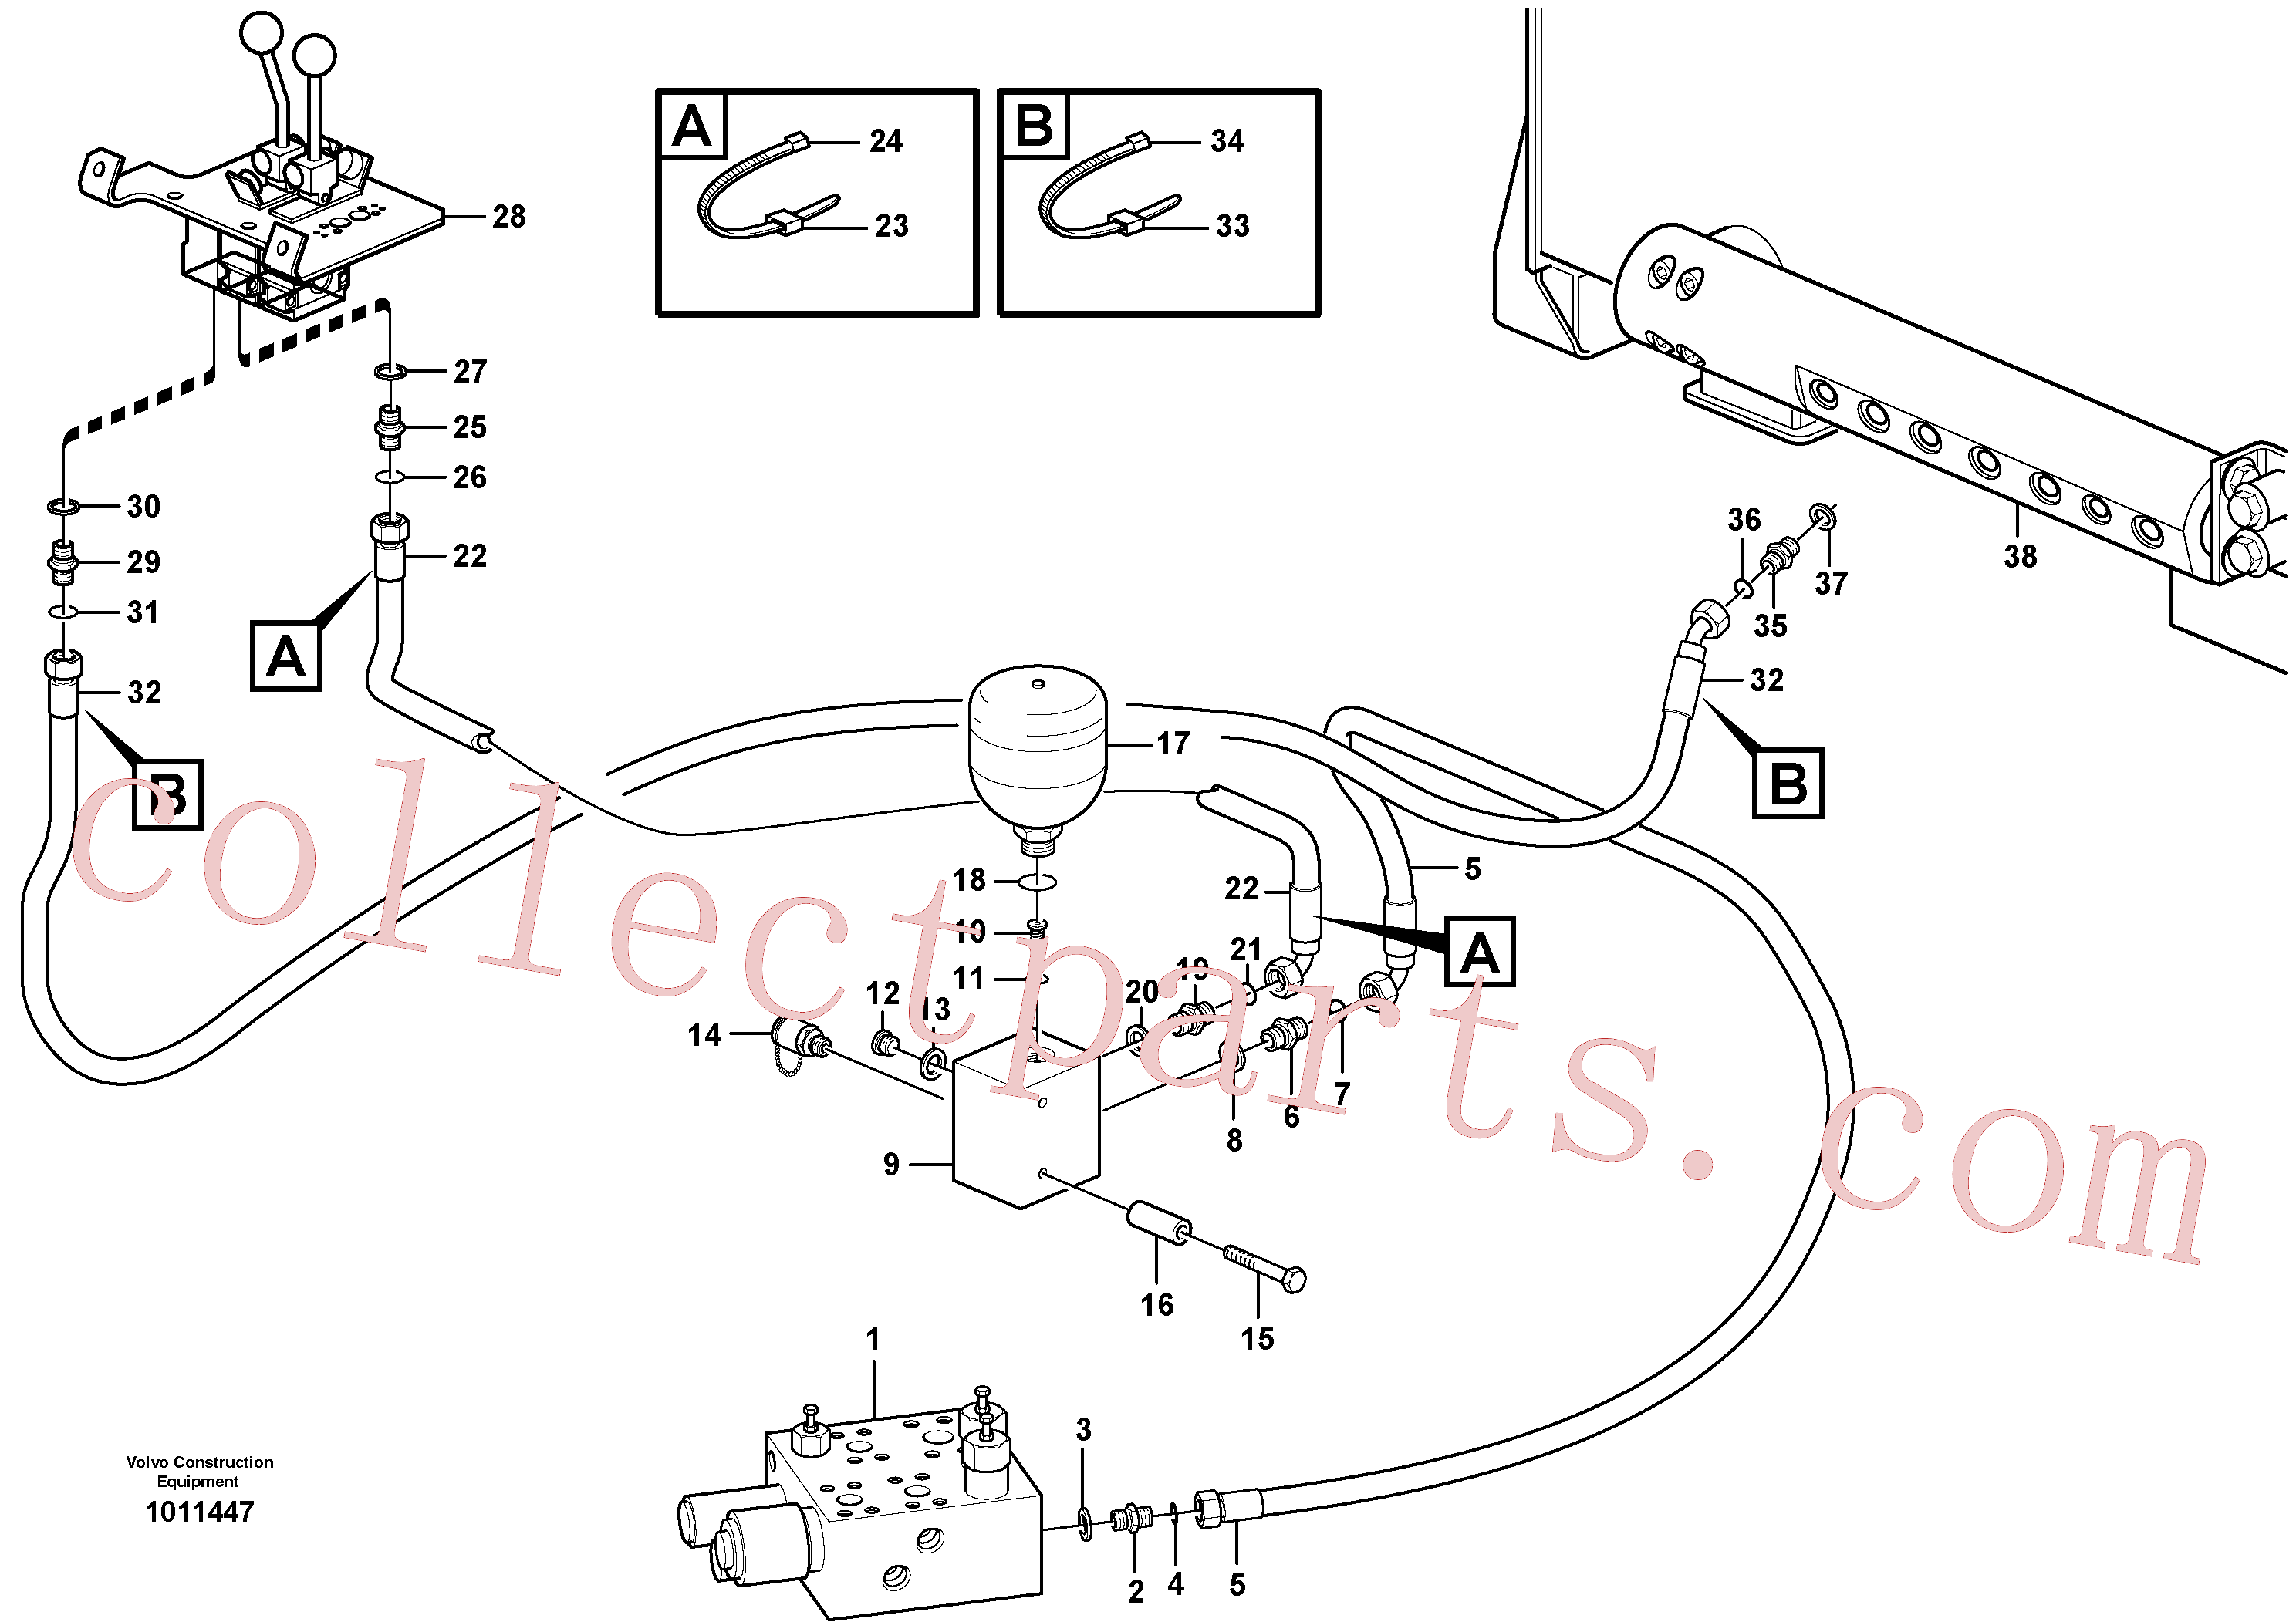 VOE11172988 for Volvo Servo - hydraulic, feed and return lines(1011447 assembly)